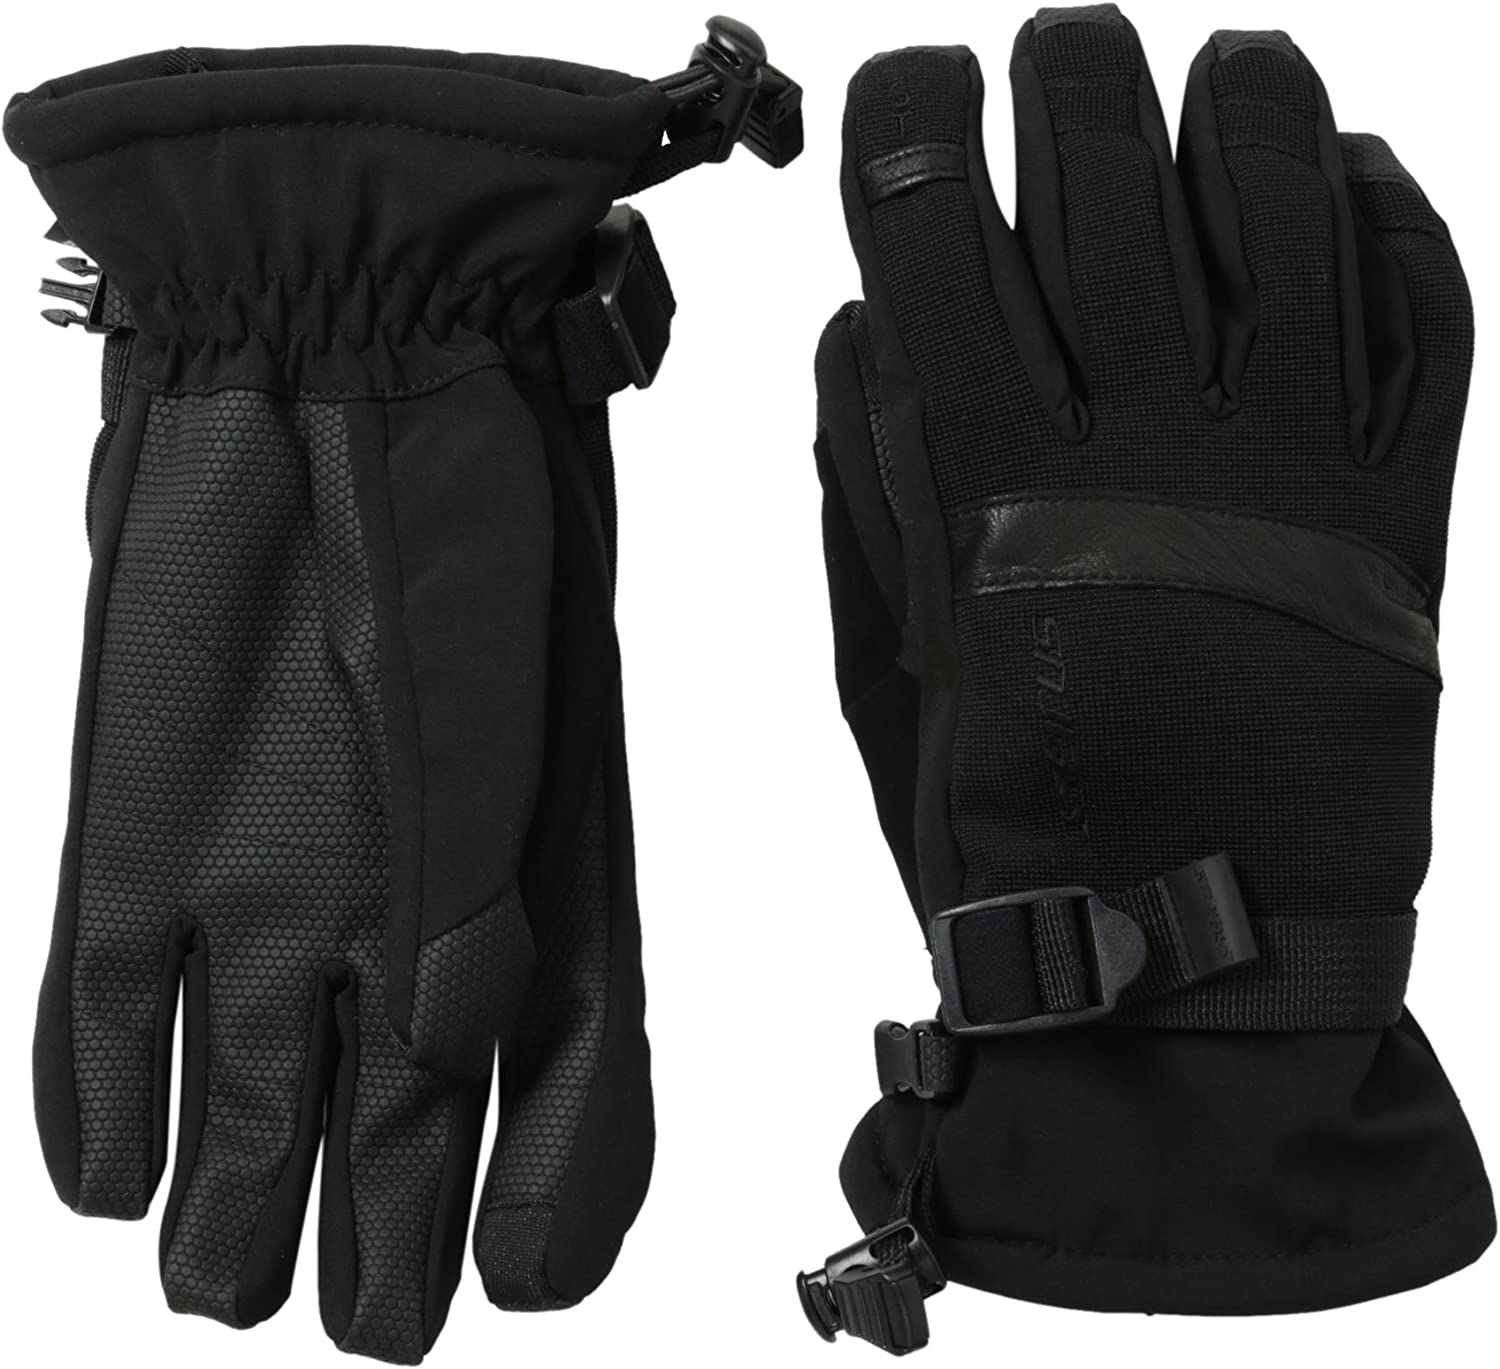 Seirus Innovation 1174 Mens Xtreme All Weather Edge Lightweight Polartec Form Fit Waterproof Leather Glove with Soundtouch Touch Screen Technology